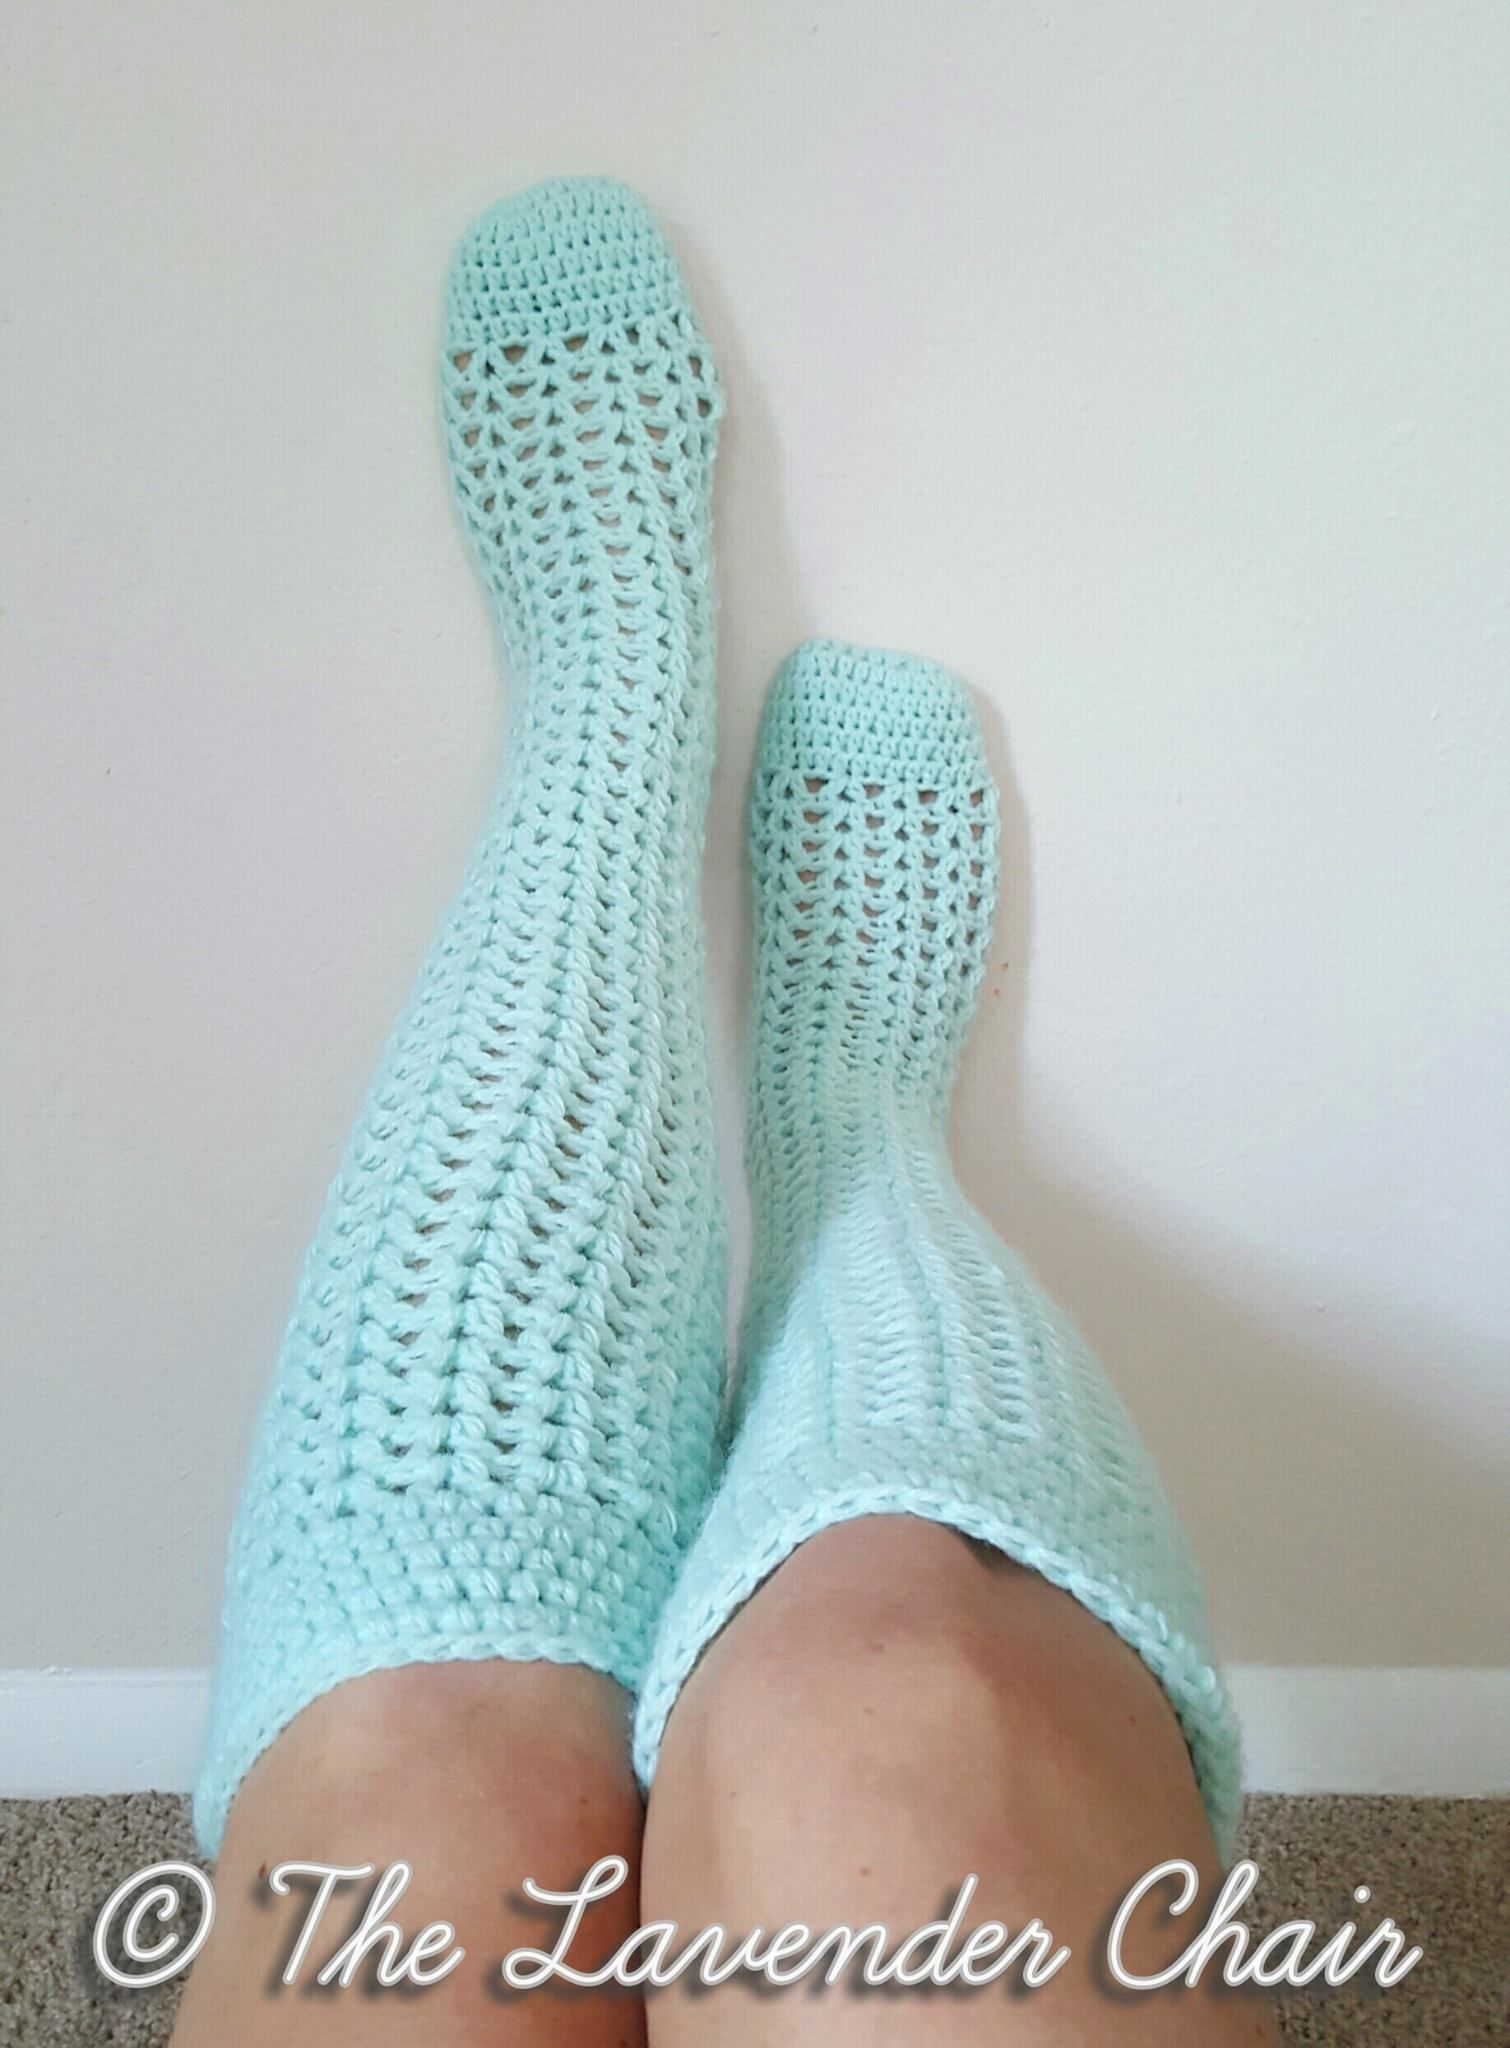 faa2ab8ff67 Valerie s Knee High Socks - Free Crochet Patterns - The Lavender Chair